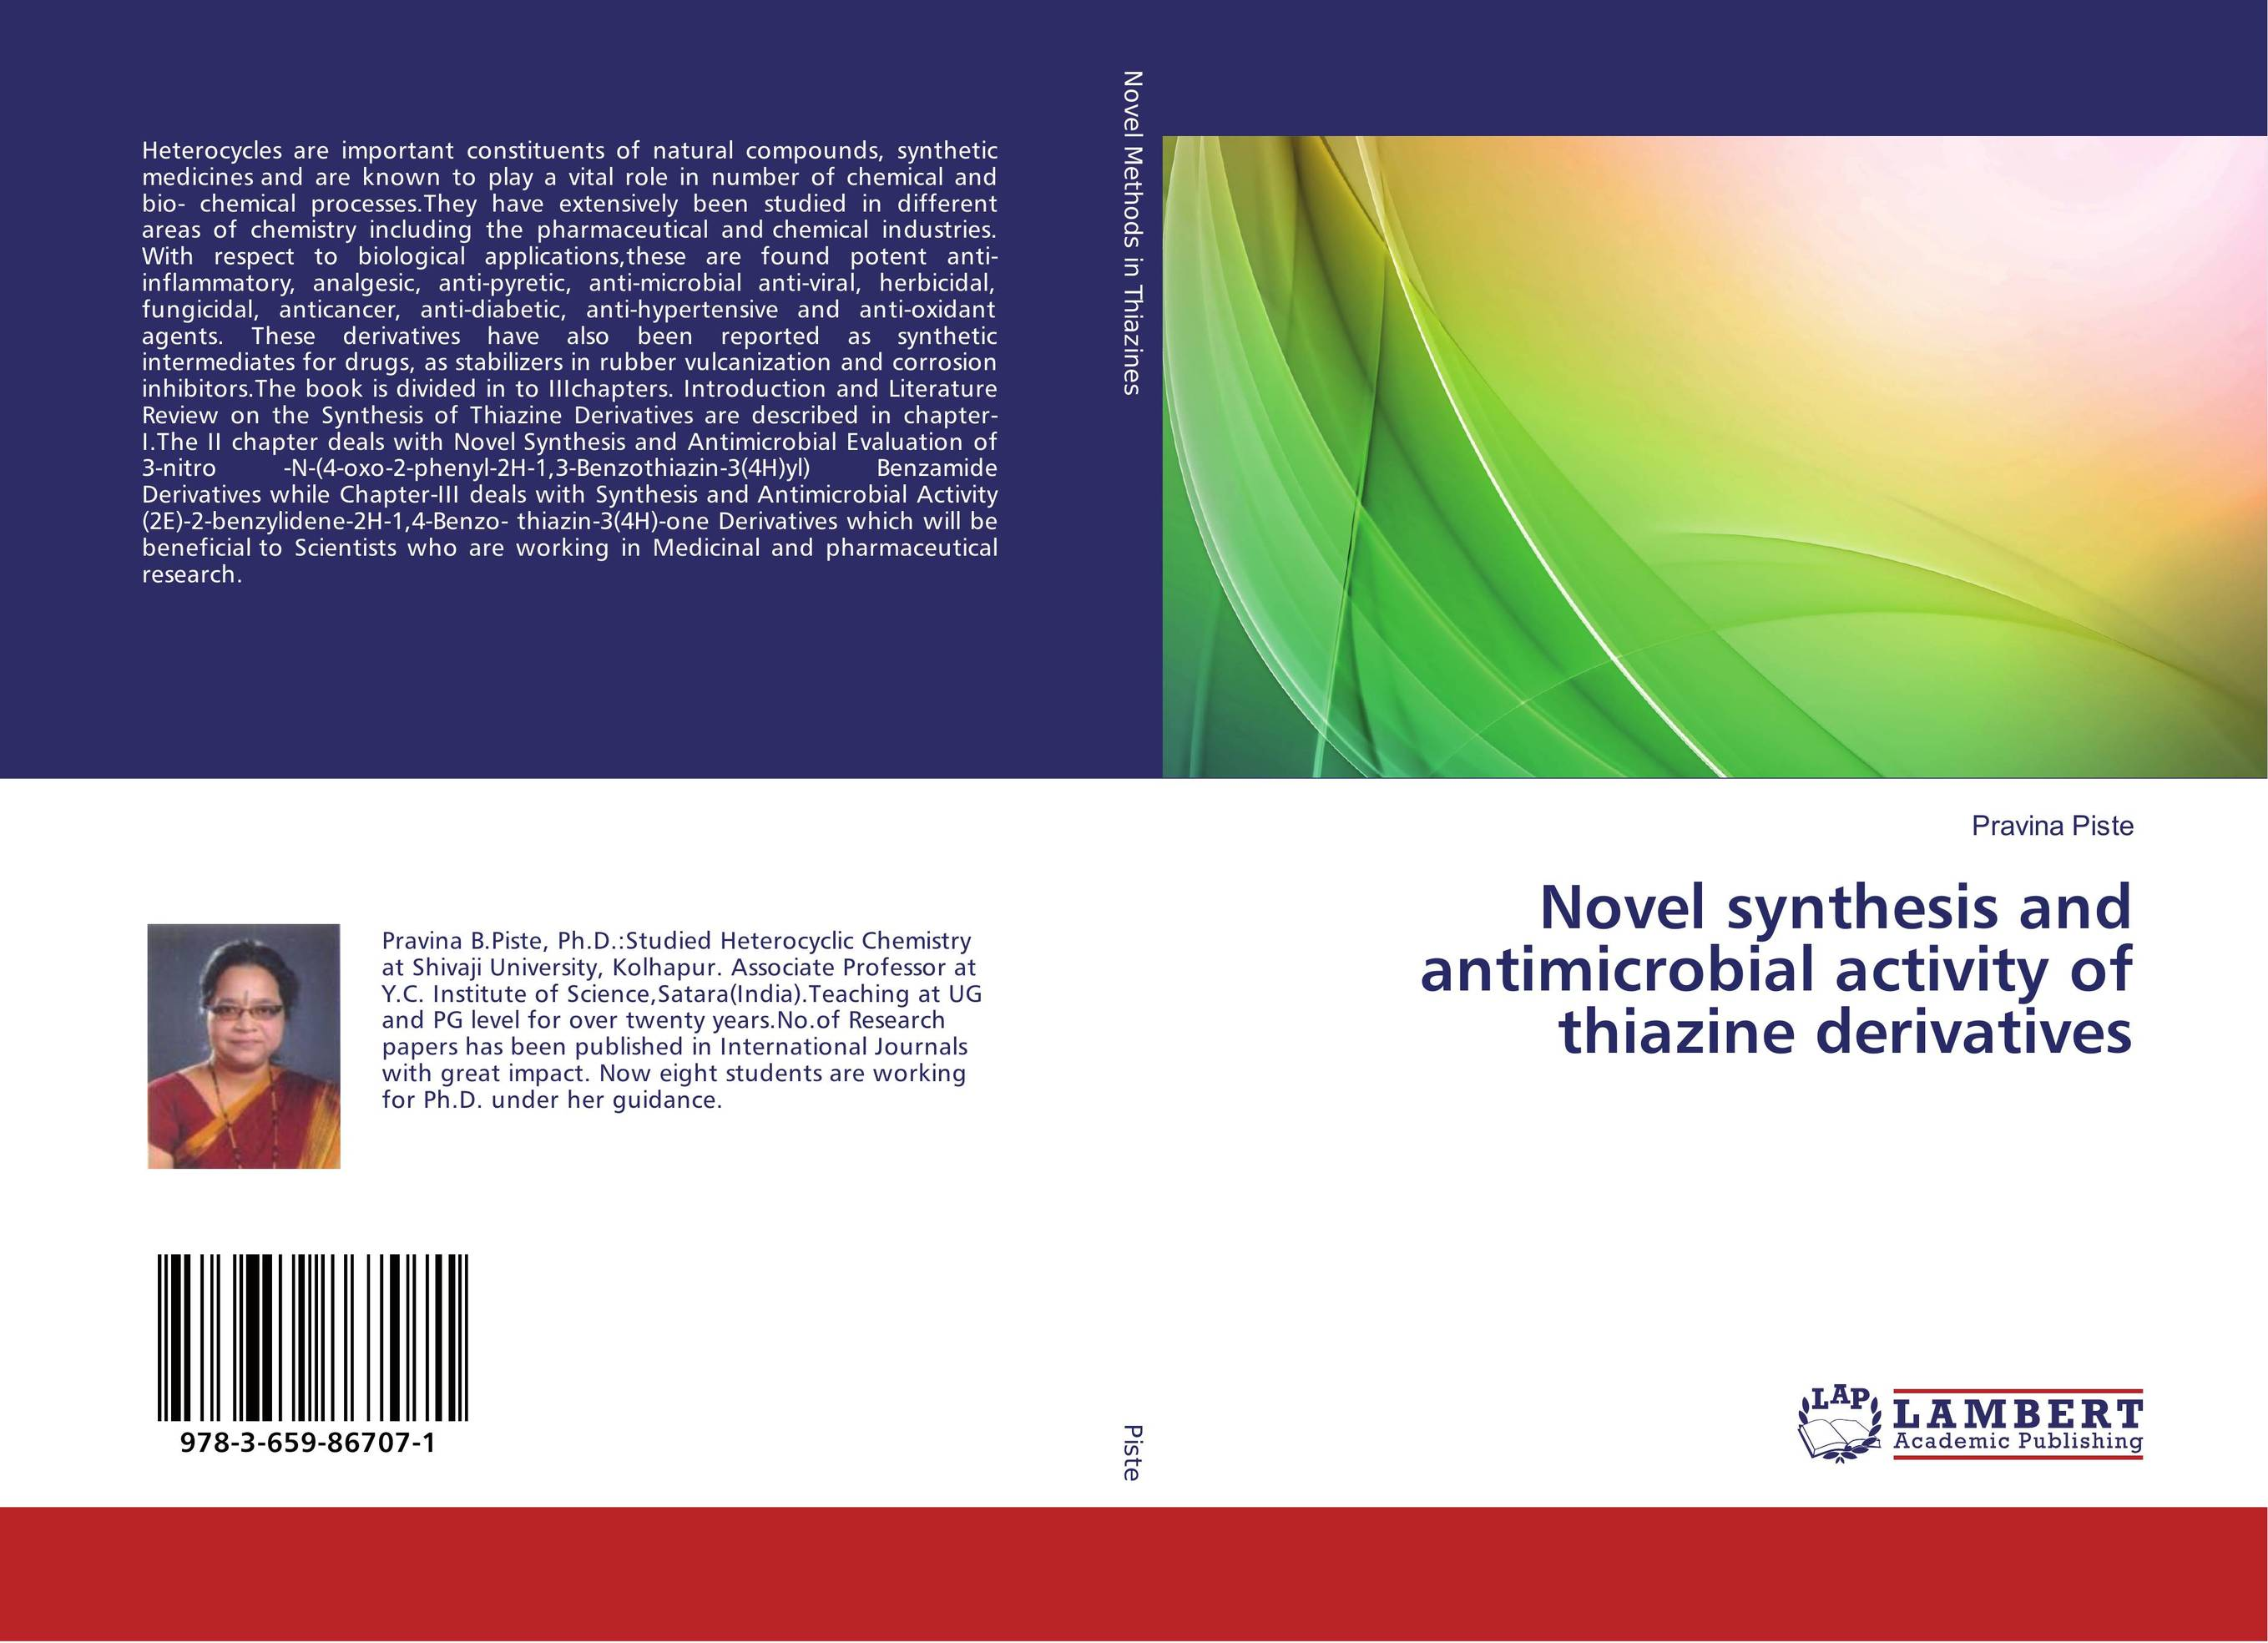 Novel synthesis and antimicrobial activity of thiazine derivatives sandip p vyas novel s triazine derivatives